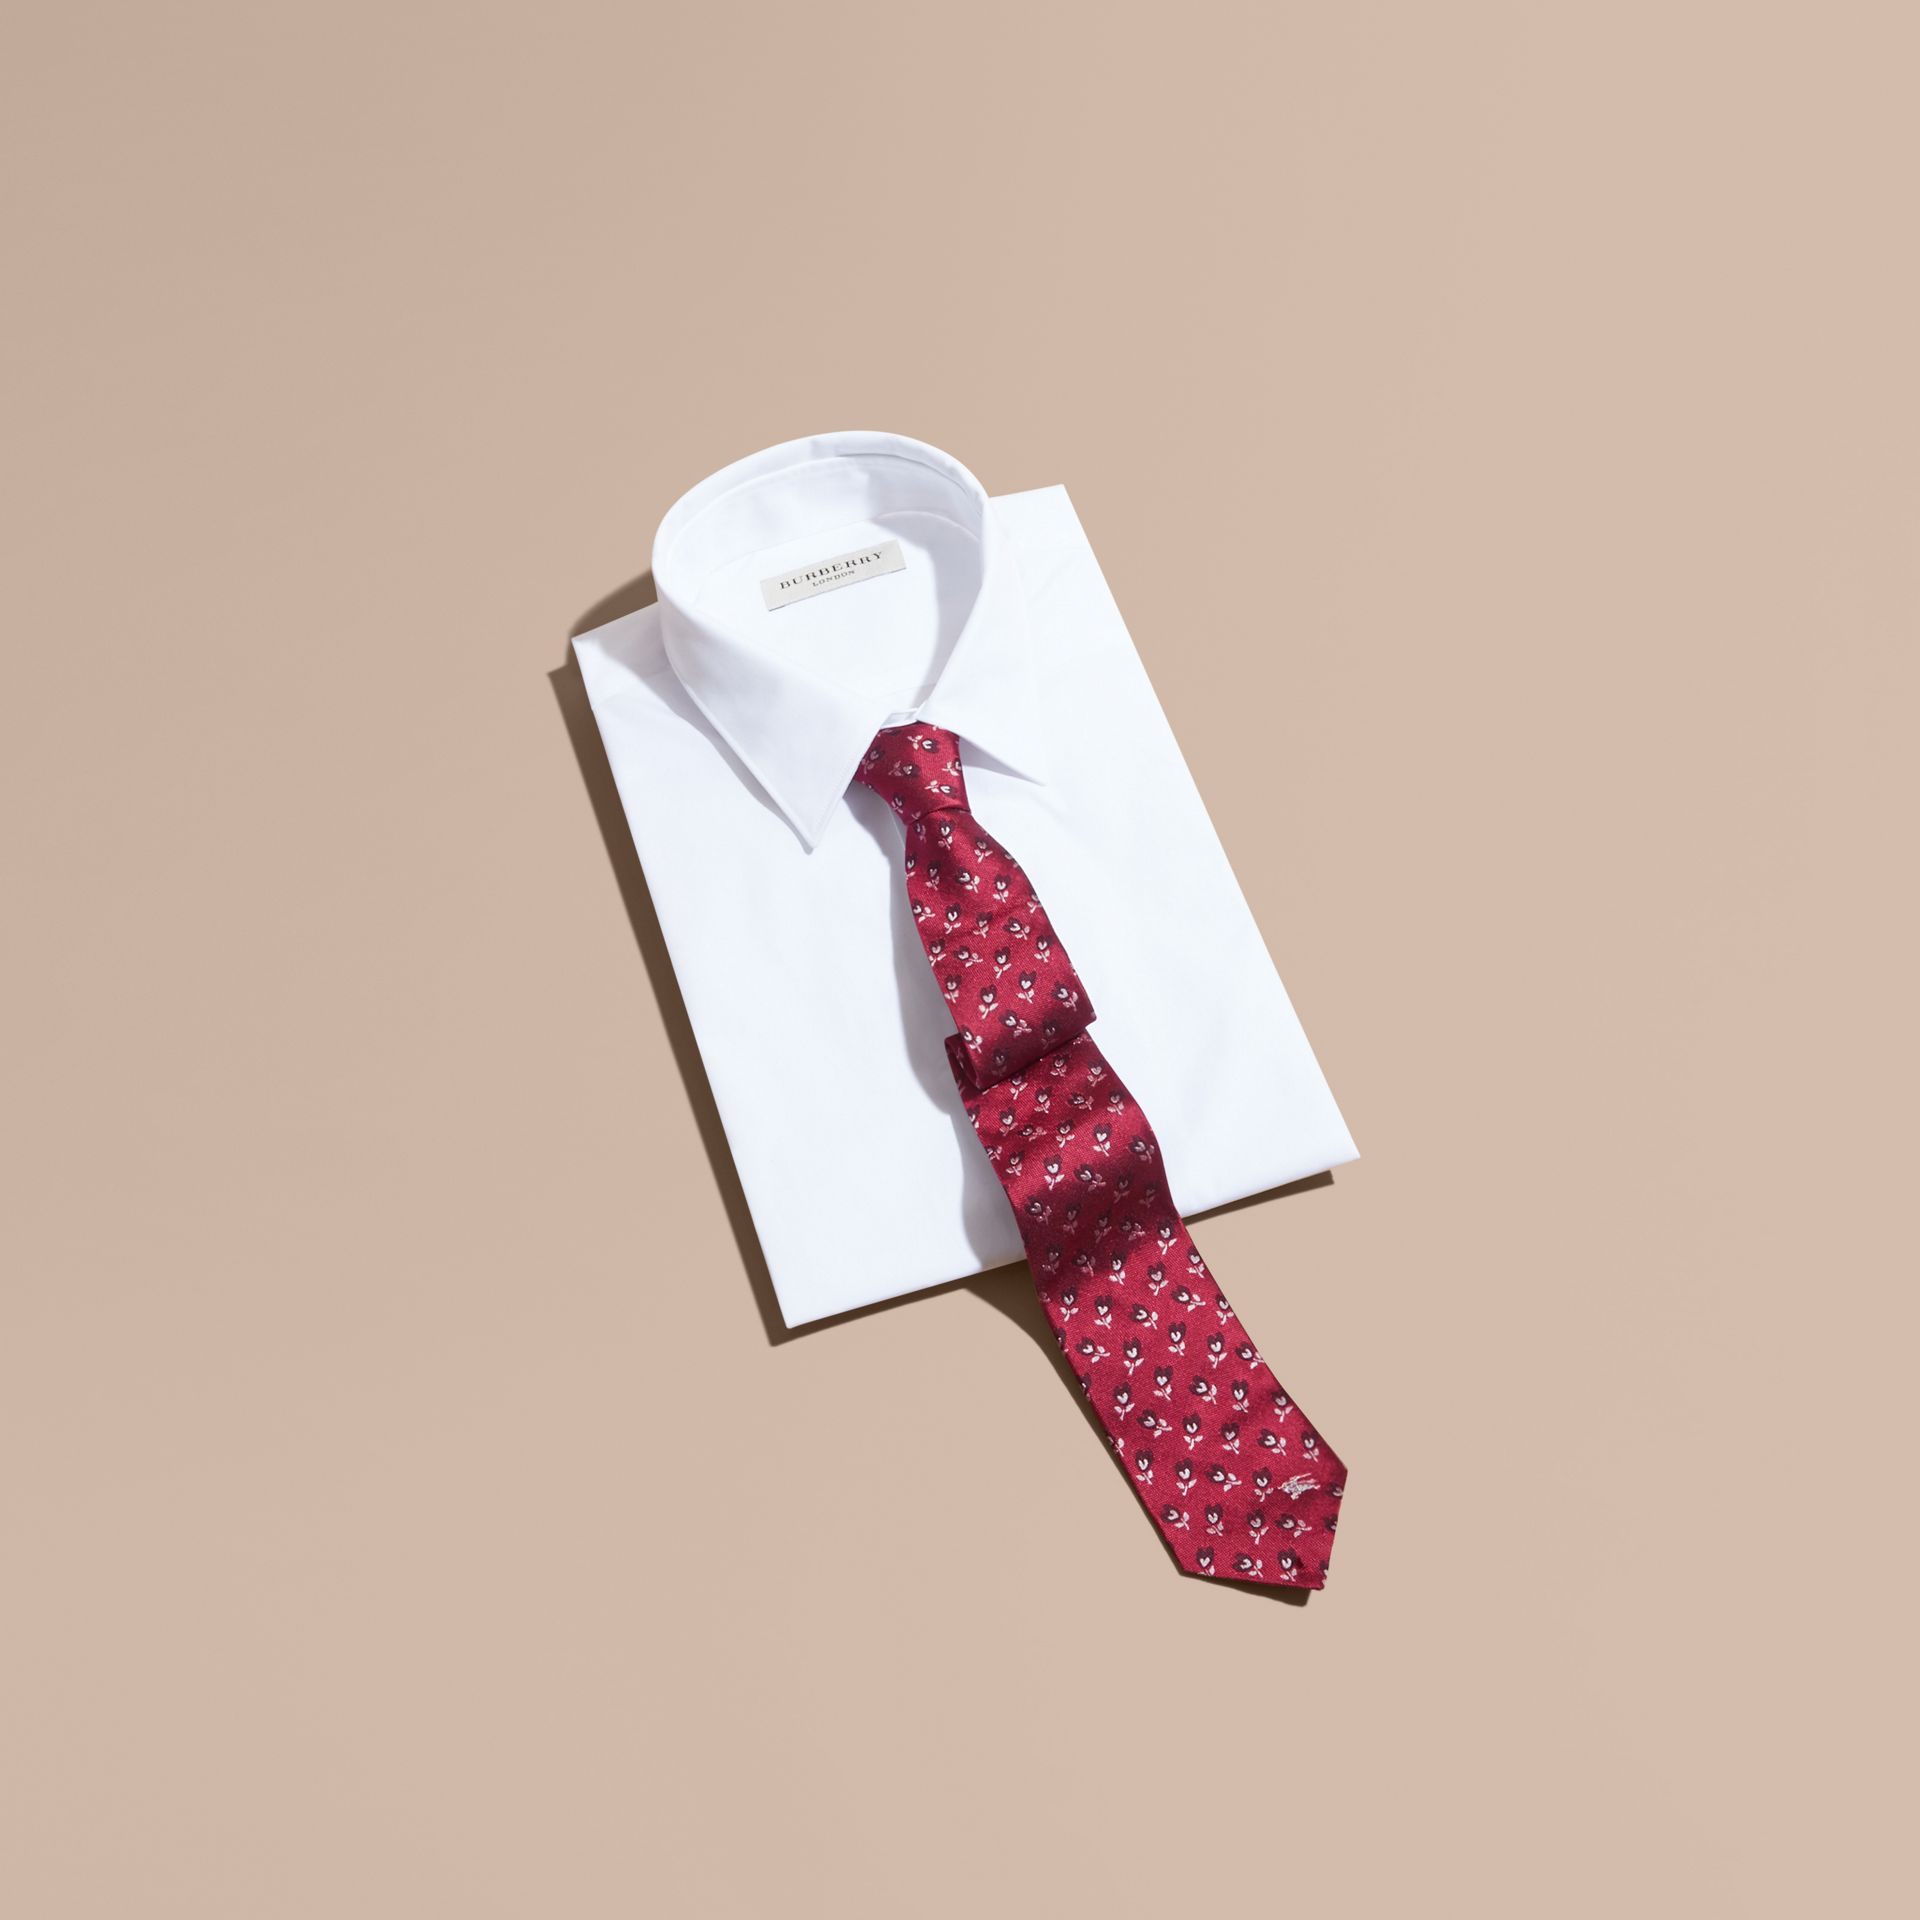 Modern Cut Floral Silk Jacquard Tie in Plum Pink - Men | Burberry - gallery image 4